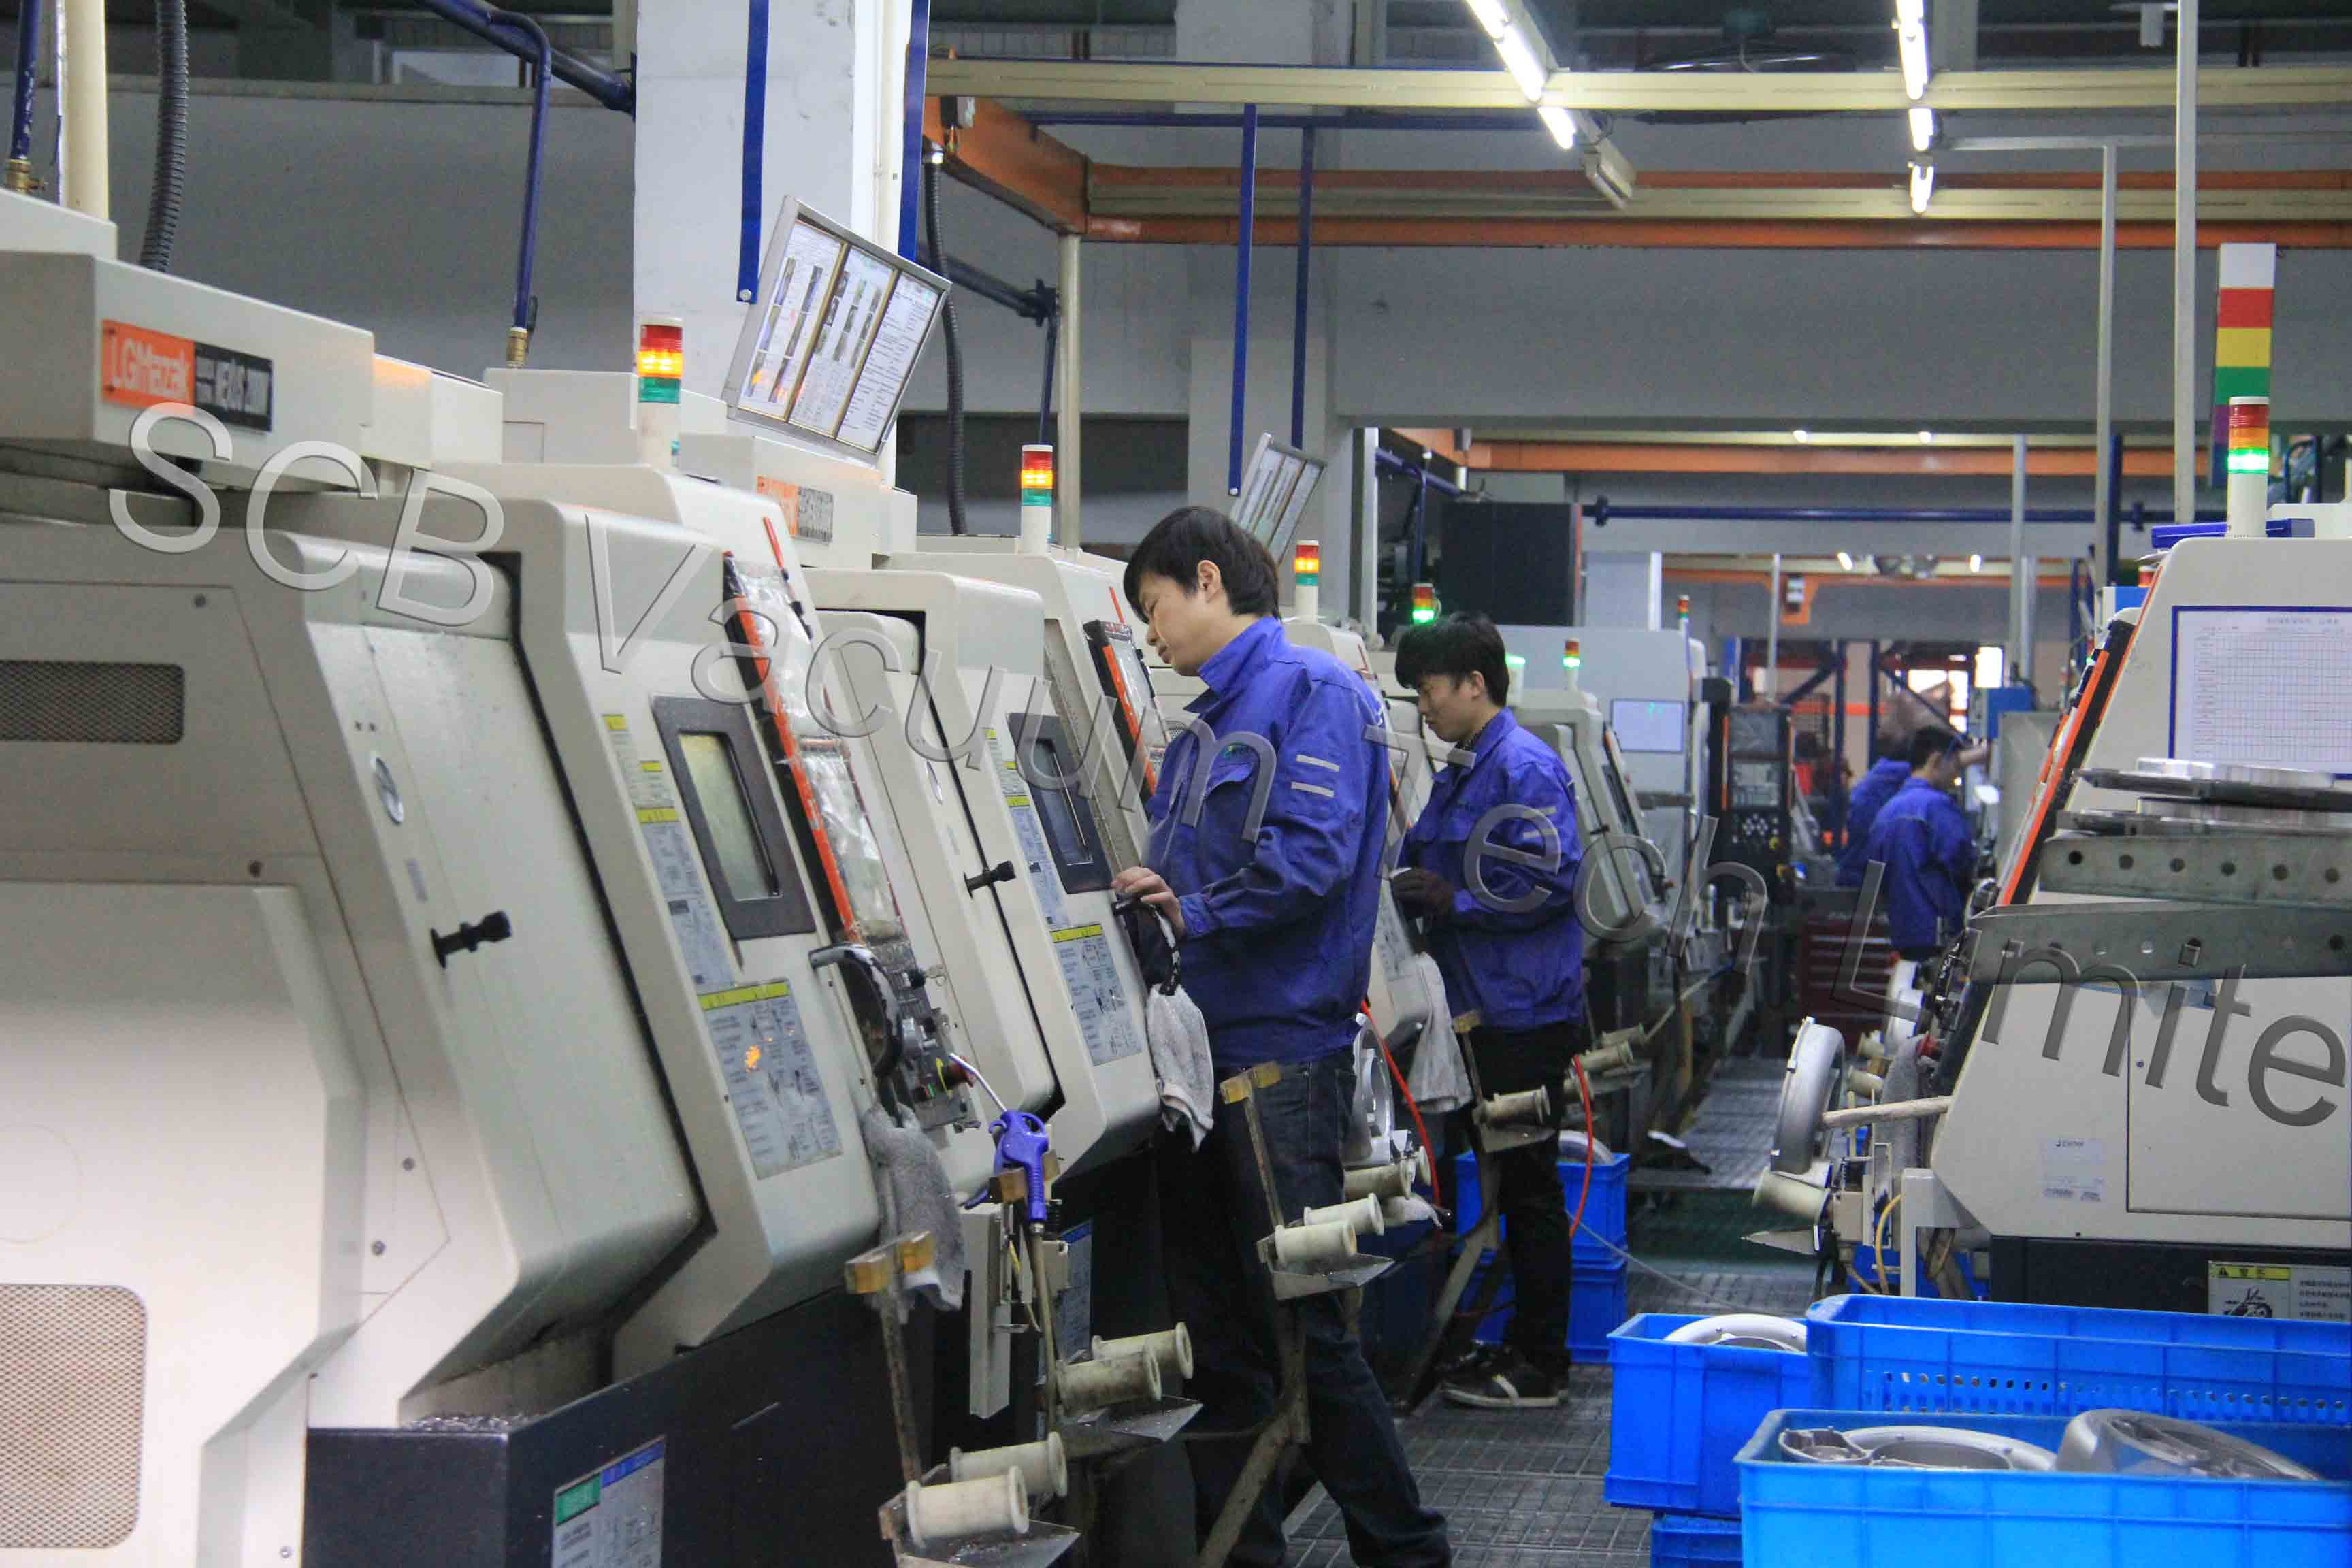 SCB Vacuum Tech Limited